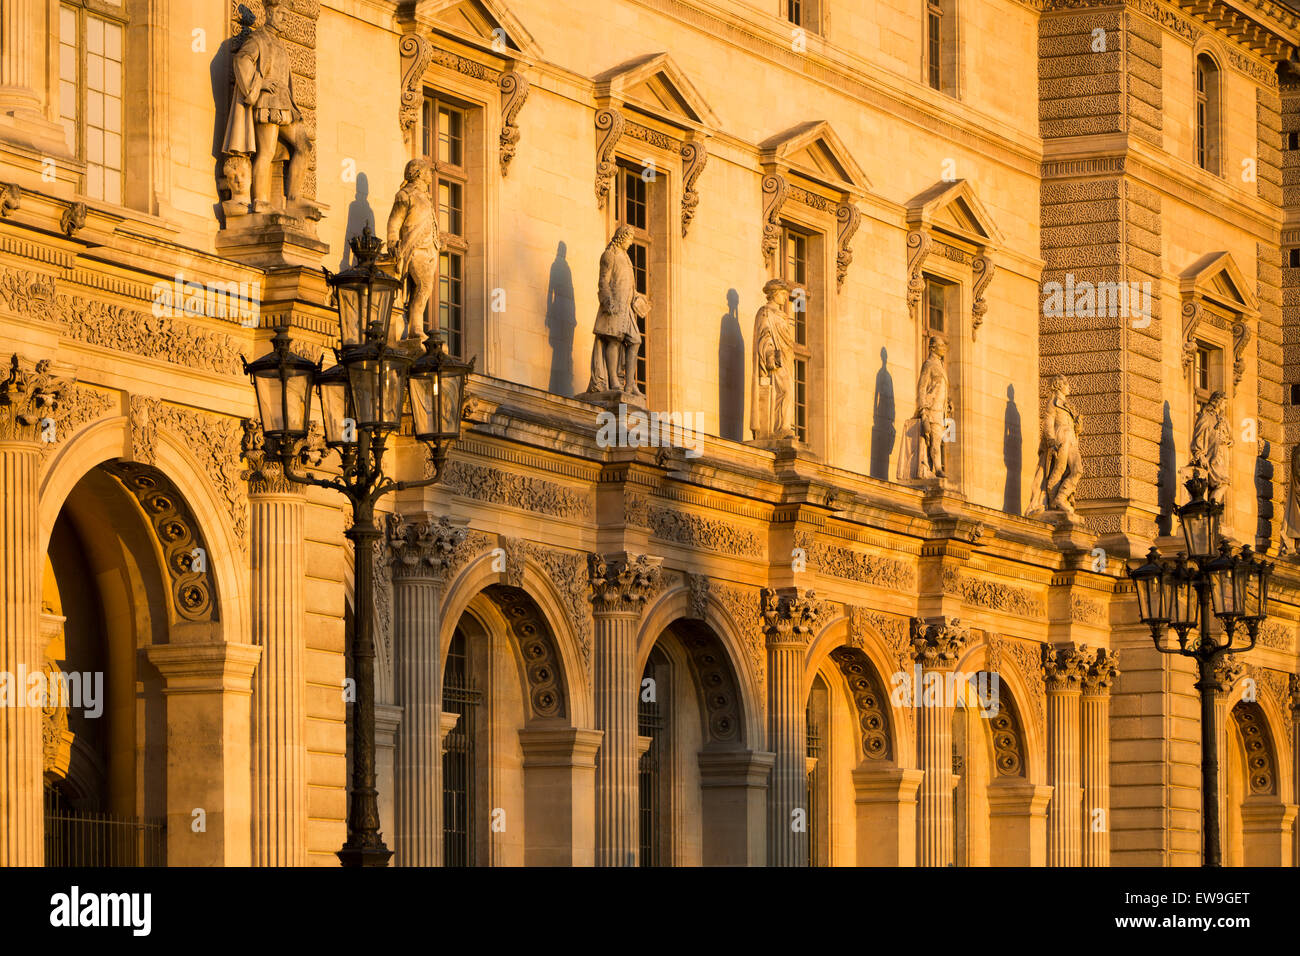 Sunset on statues along the exterior wall of Musee du Louvre, Paris, France - Stock Image